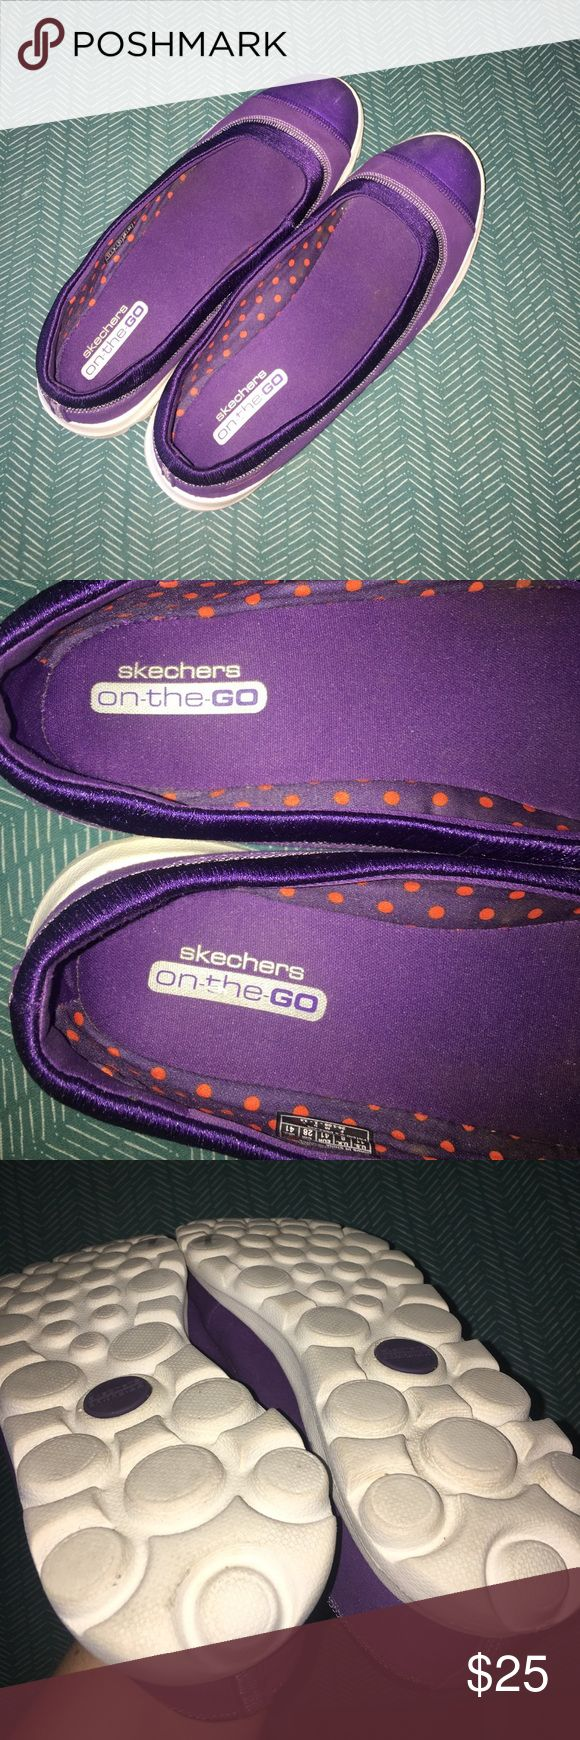 Skechers On the Go slip-on shoes sz 11 Skechers On The Go purple slip-on walking shoes.  Women's size 11. In very good, gently used condition. No holes, no odors and very little signs of wear. Coming from a smoke-free home. 🌟🌟 (AUTOMATIC 30% off bundles of 4 or more, just make a bundle and it'll come right off. And I have lots of $10-15-20 items!) Skechers Shoes